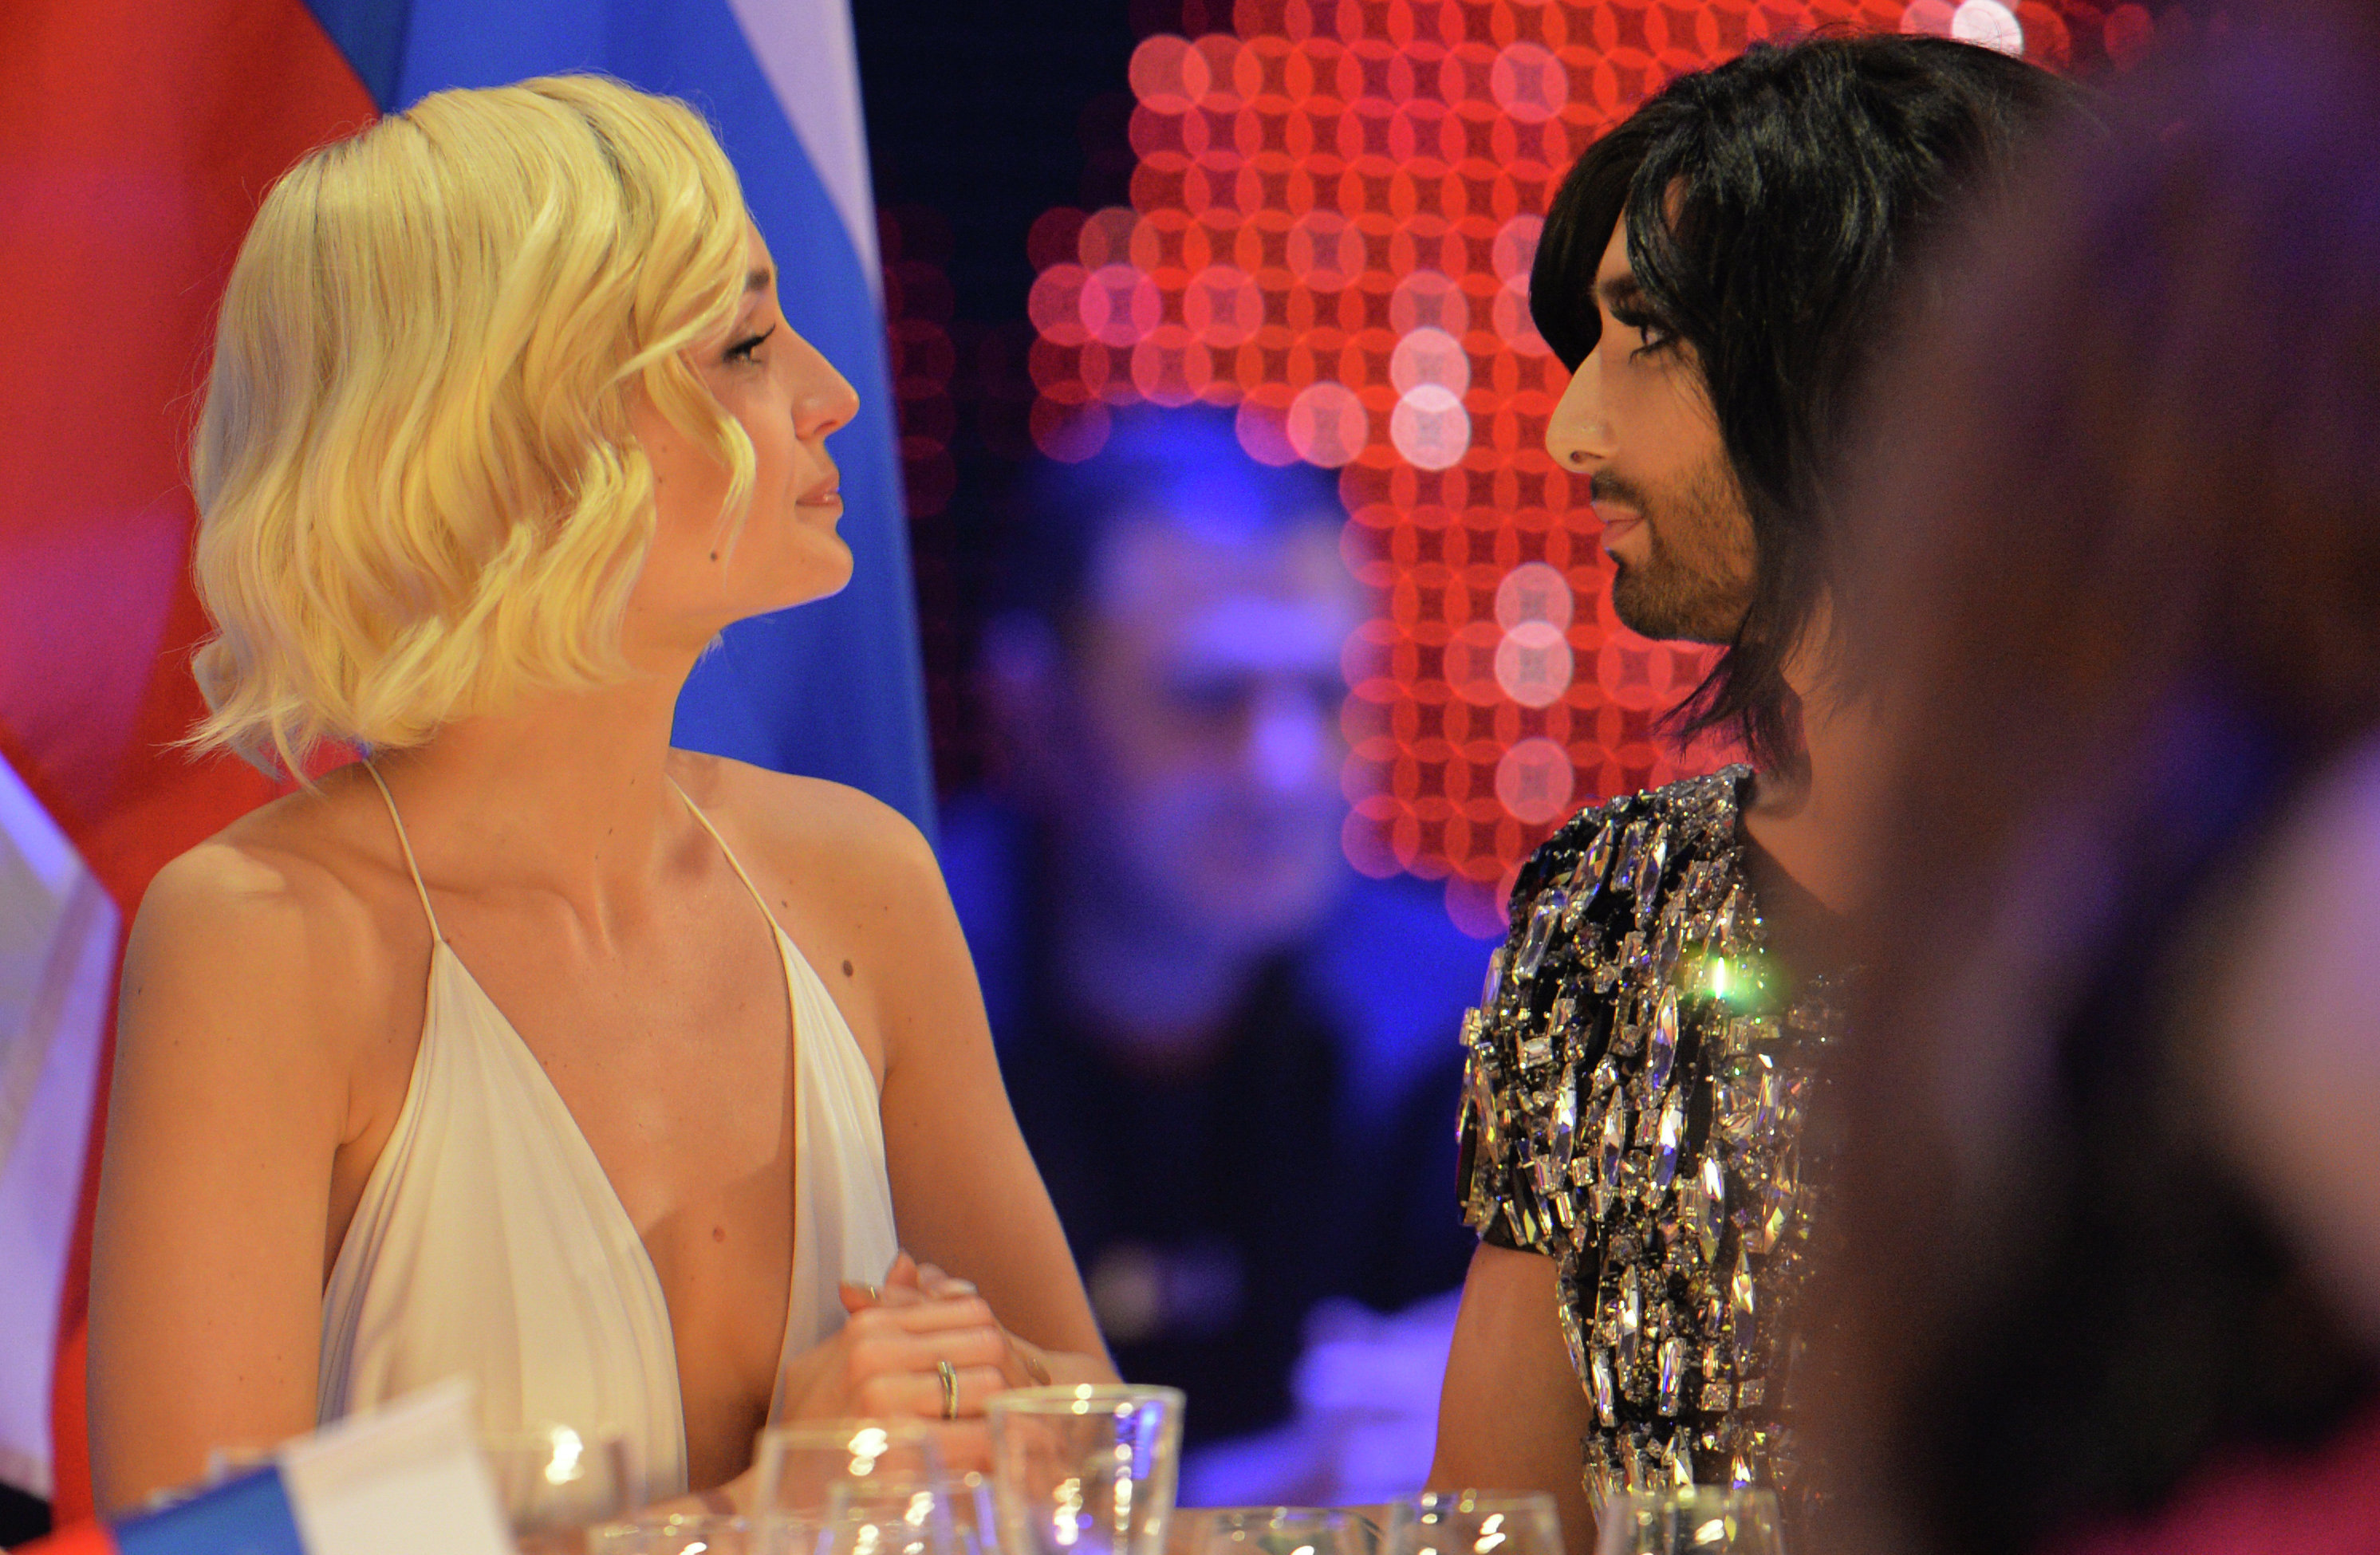 Conchita Wurst, who won the 2014 ESC for Austria, right, talks to Polina Gagarina representing Russia during the final of the Eurovision Song Contest in Austria's capital Vienna, Sunday, May 24, 2015